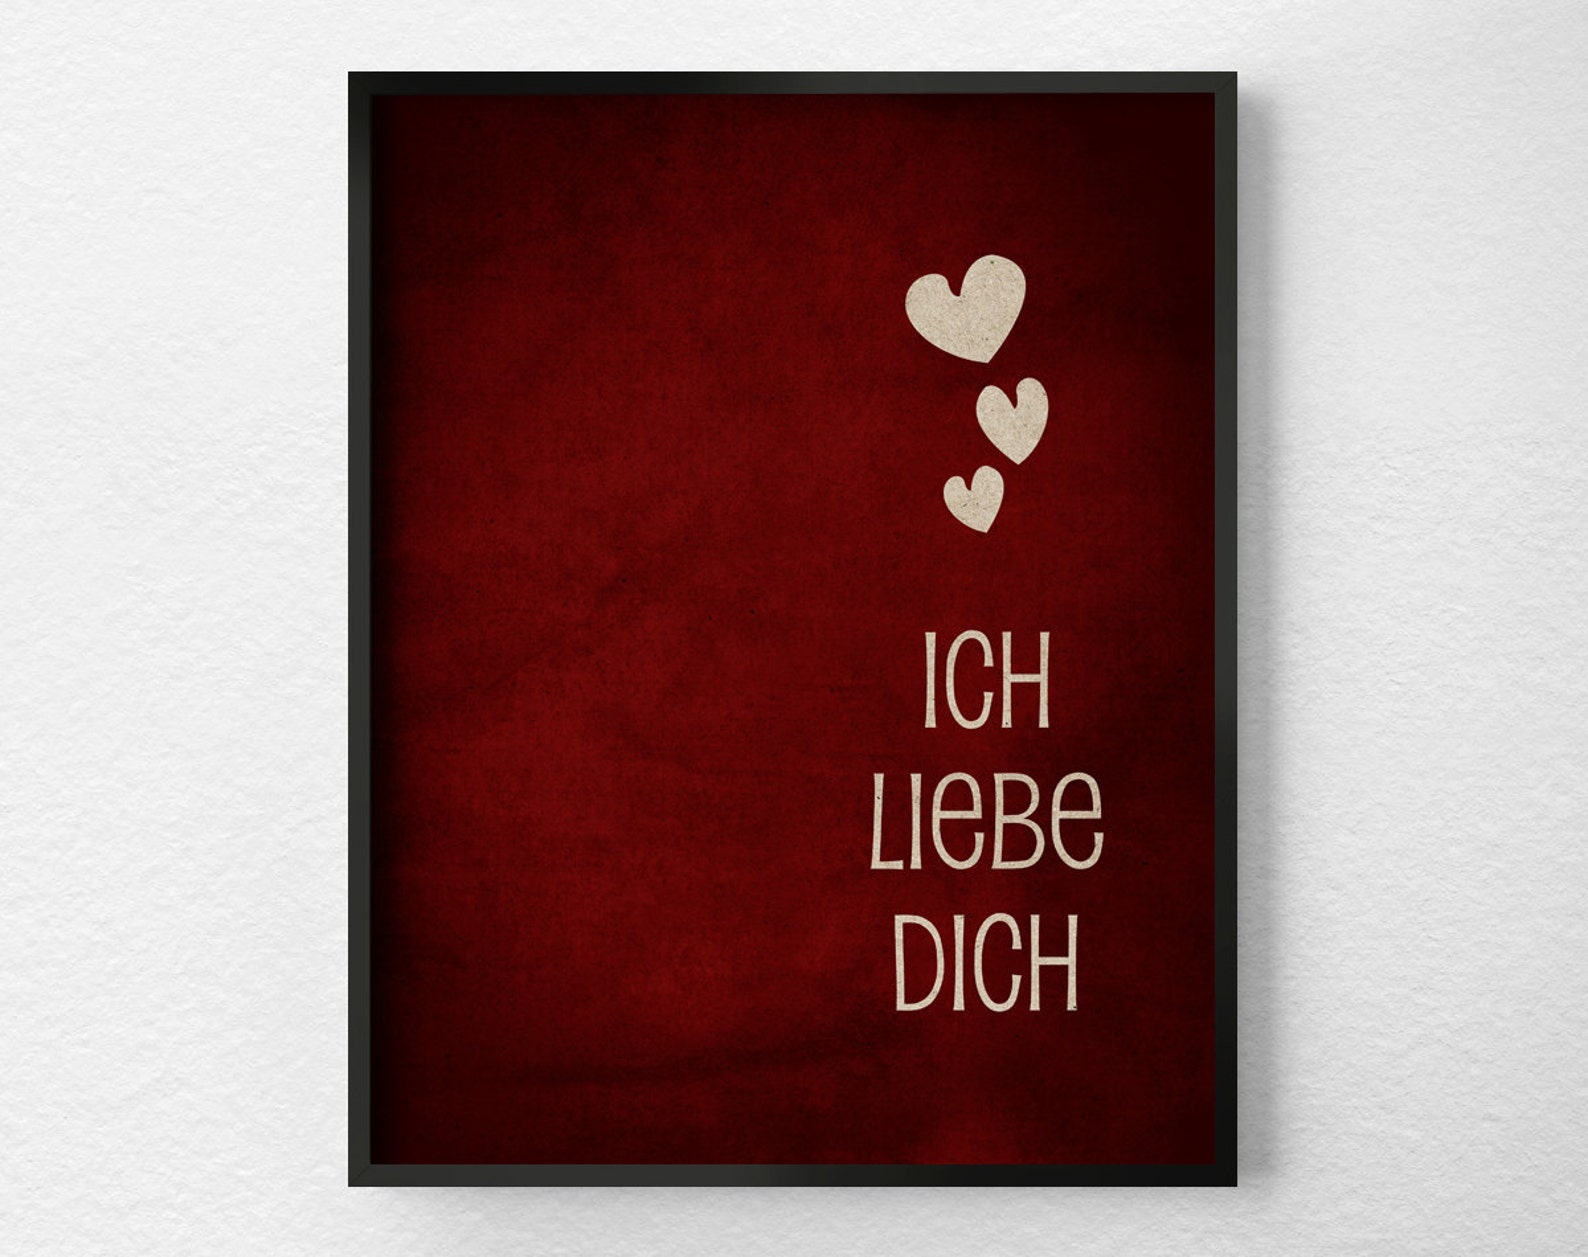 Ich Liebe Dich, I Love You German, Typography Poster, Valentines Day Decor